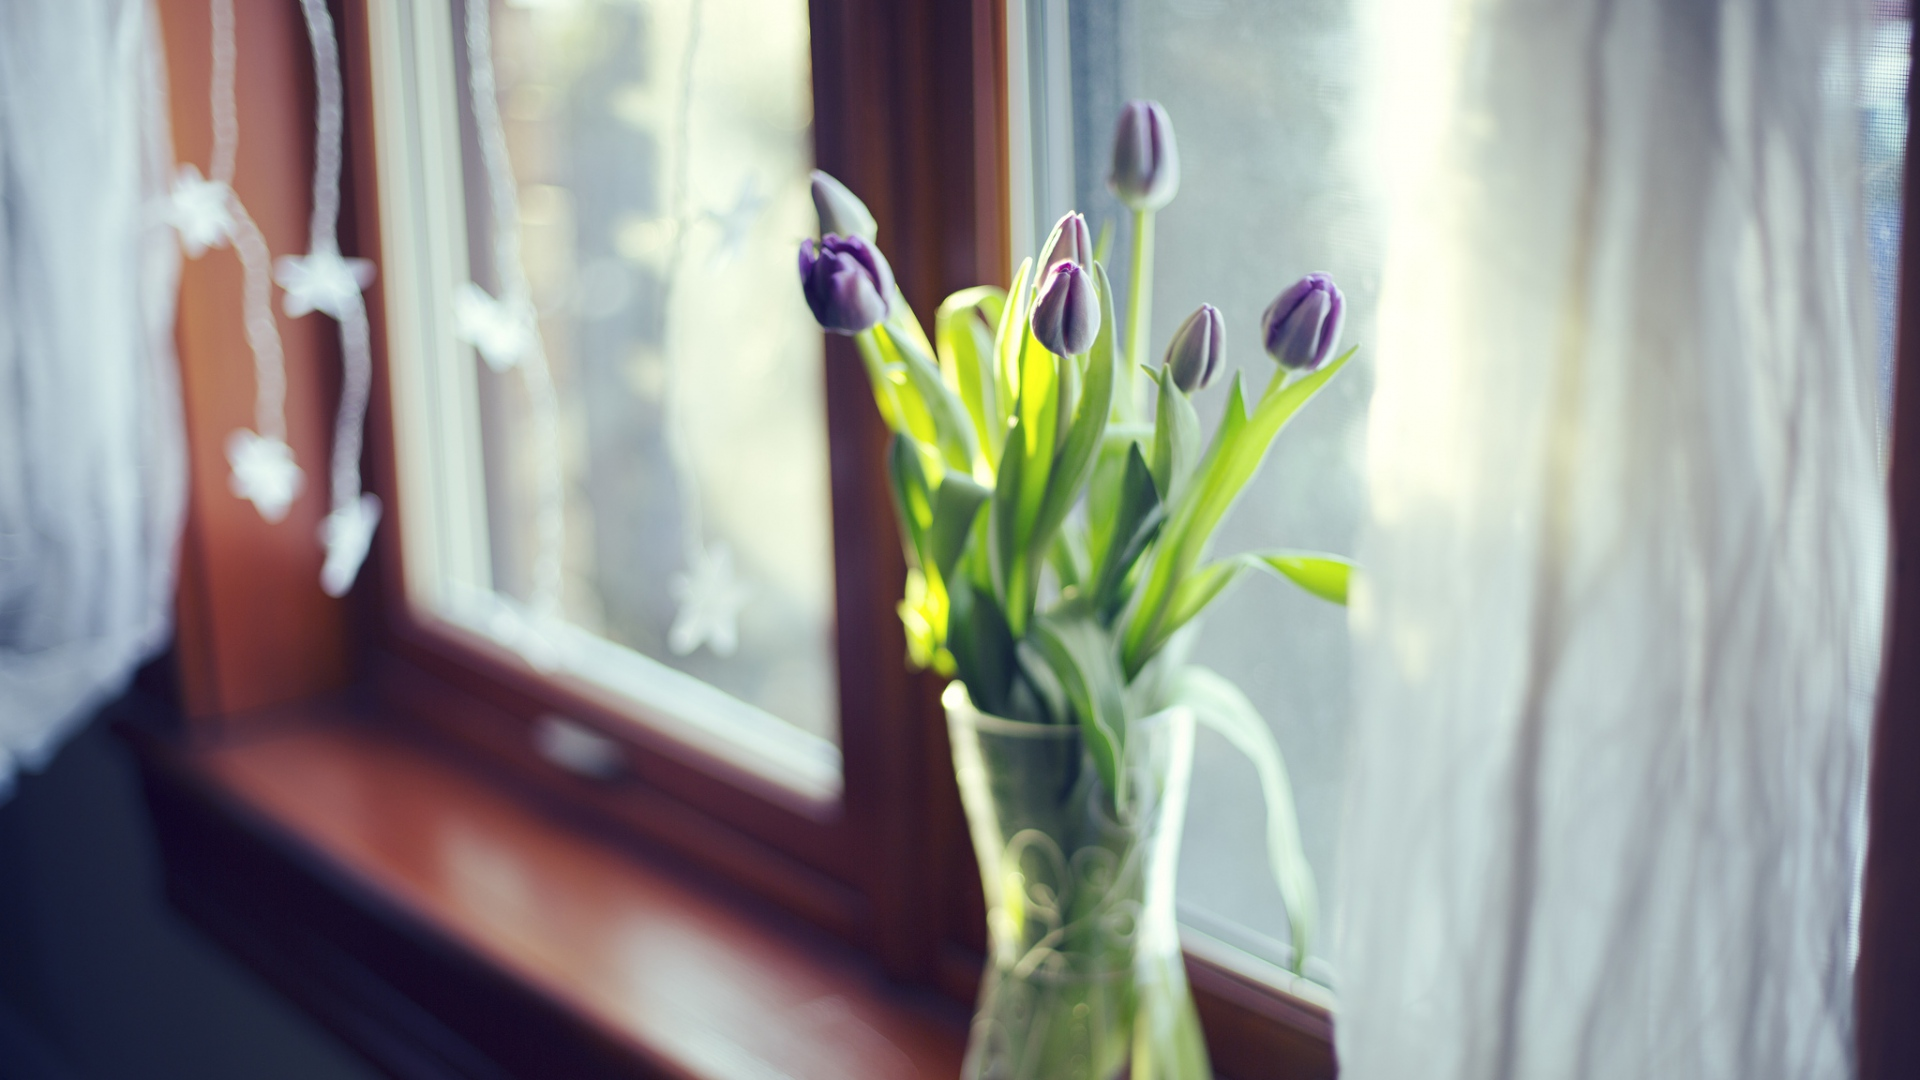 hd hintergrundbilder tulpen blumenstrau vase glas fenster licht desktop hintergrund. Black Bedroom Furniture Sets. Home Design Ideas